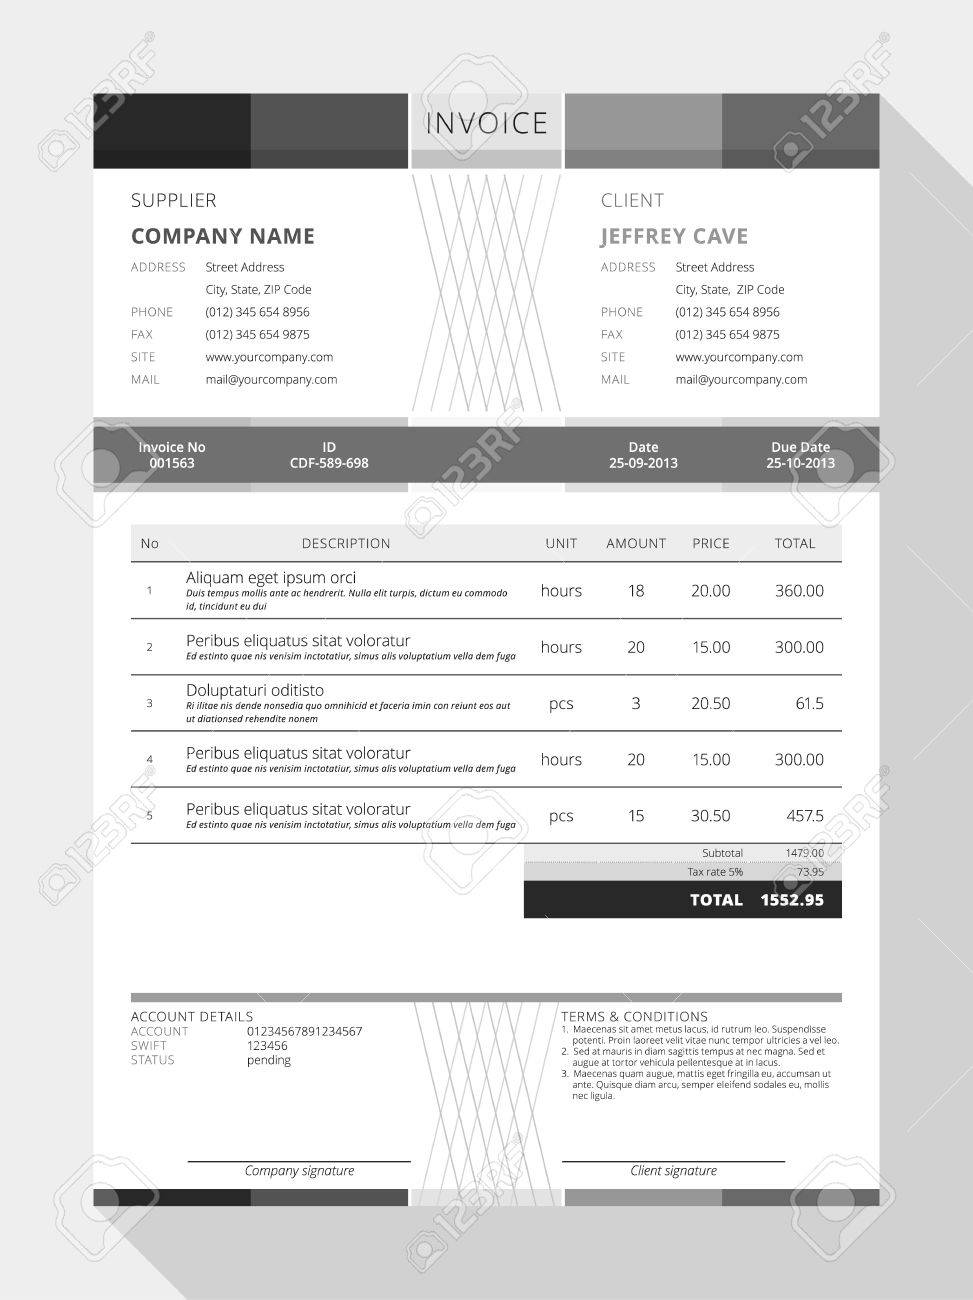 Angkajituus  Stunning Design An Invoice  Professional Graphic Design Invoice  With Inspiring Vector Customizable Invoice Form Template Design Vector   Design An Invoice With Alluring Pro Forma Vat Invoice Also Hotel Invoice Sample In Addition Cif Invoice And Preform Invoice As Well As Free Invoice Software For Small Business Download Additionally Sample Invoice Australia From Happytomco With Angkajituus  Inspiring Design An Invoice  Professional Graphic Design Invoice  With Alluring Vector Customizable Invoice Form Template Design Vector   Design An Invoice And Stunning Pro Forma Vat Invoice Also Hotel Invoice Sample In Addition Cif Invoice From Happytomco